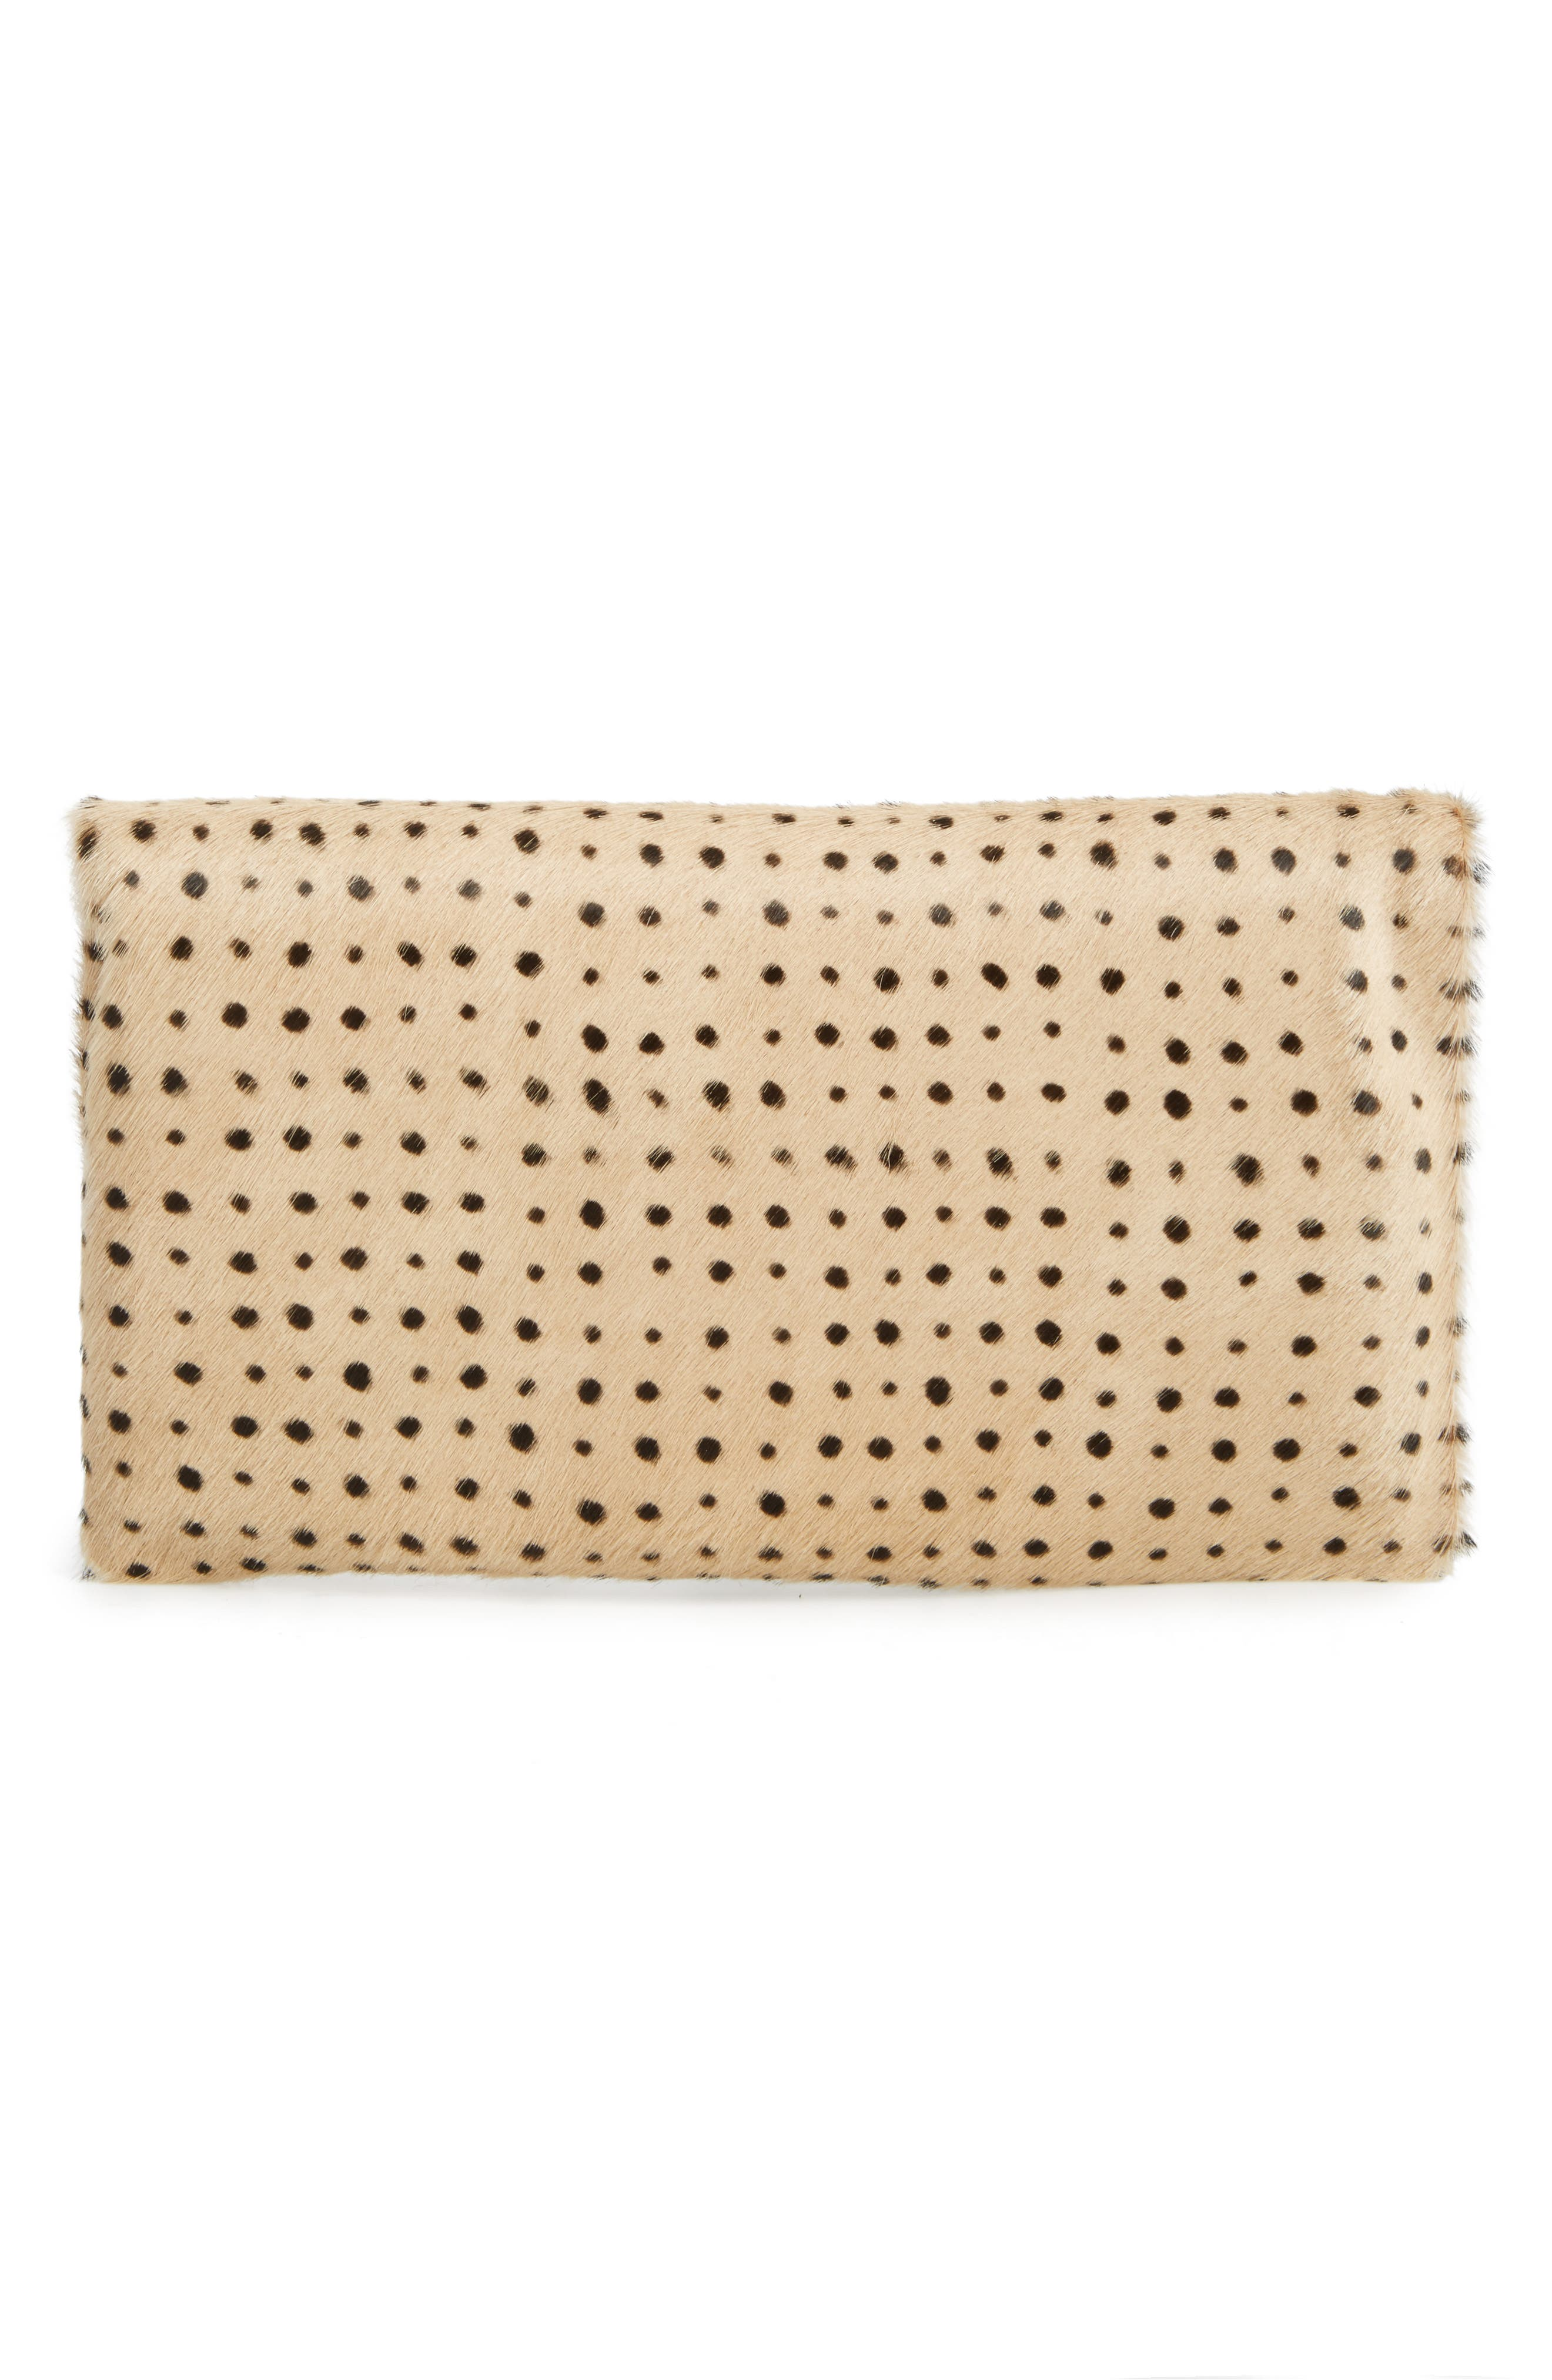 Genuine Calf Hair Foldover Clutch,                             Alternate thumbnail 3, color,                             TAN SPOTTED HAIR ON